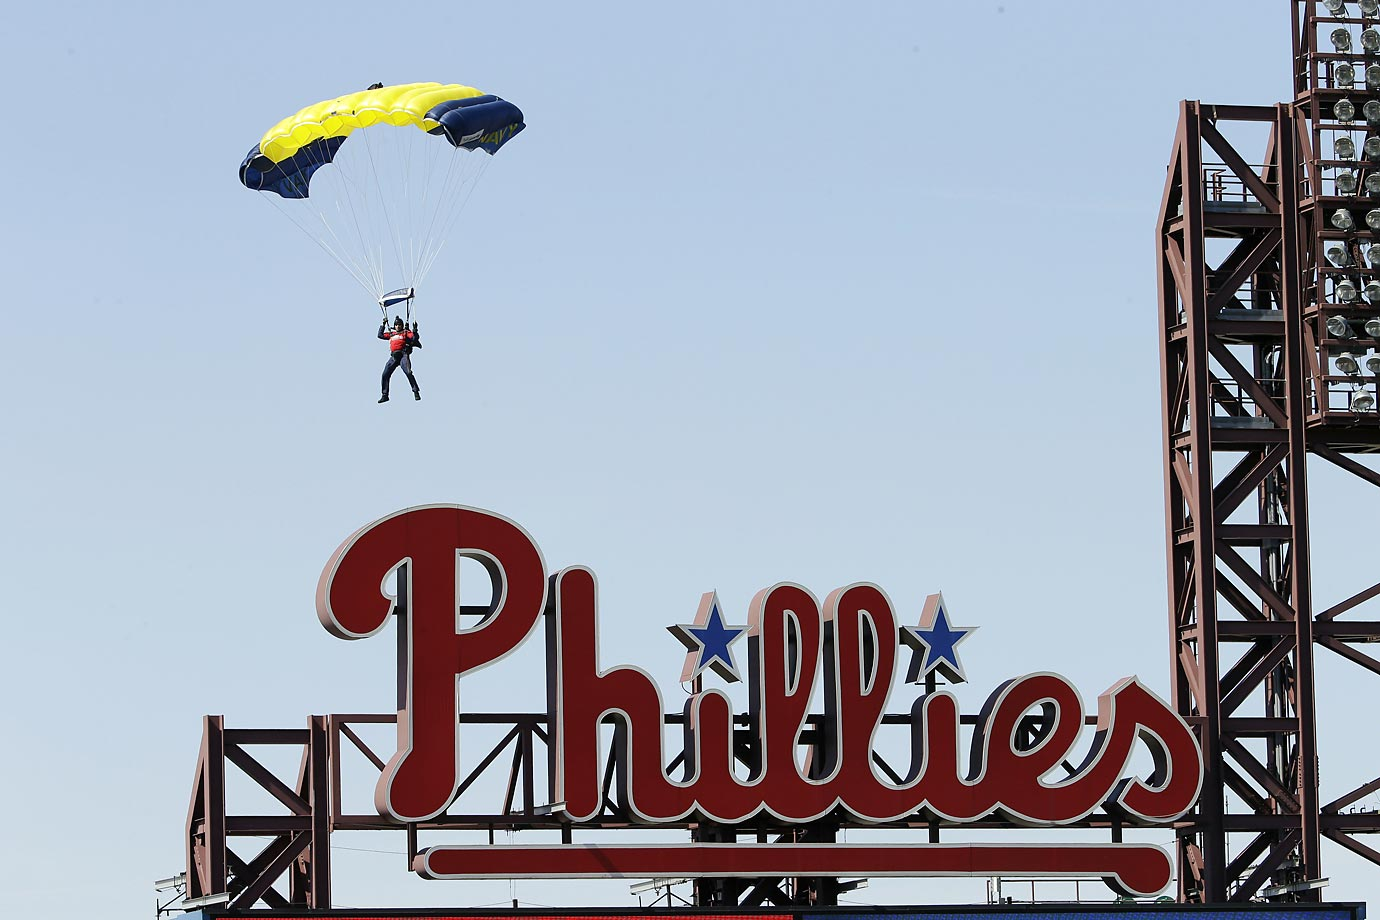 A U.S. Navy parachutist from the Leap Frogs jumps into the Phillies stadium on opening day.